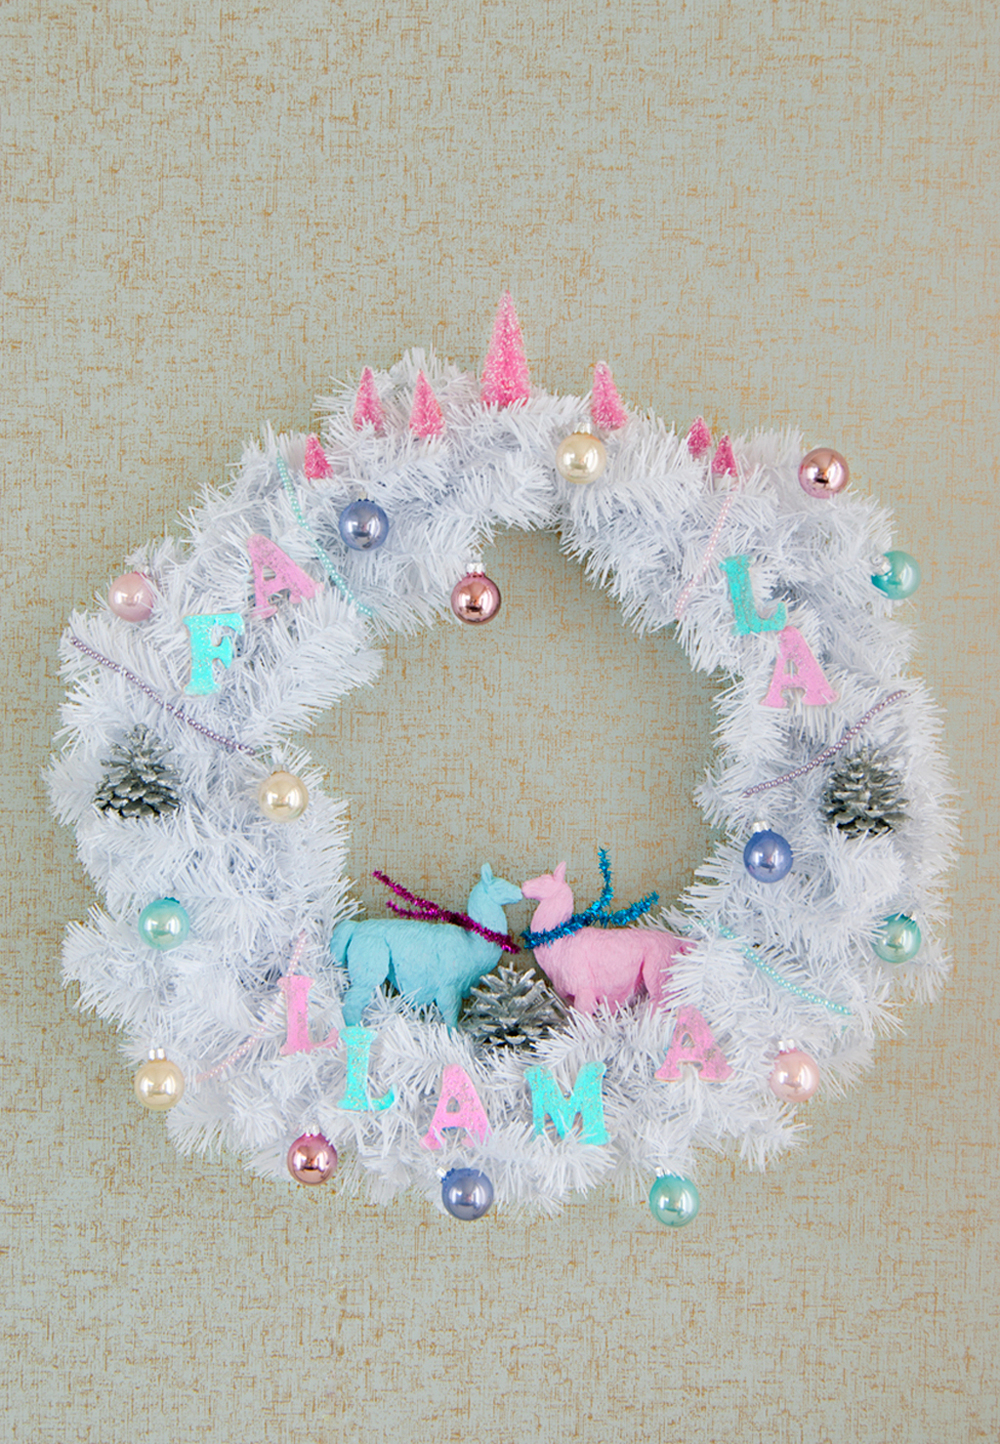 Deck the Halls with retro llamas! DIY Fa La Llama Wreath!